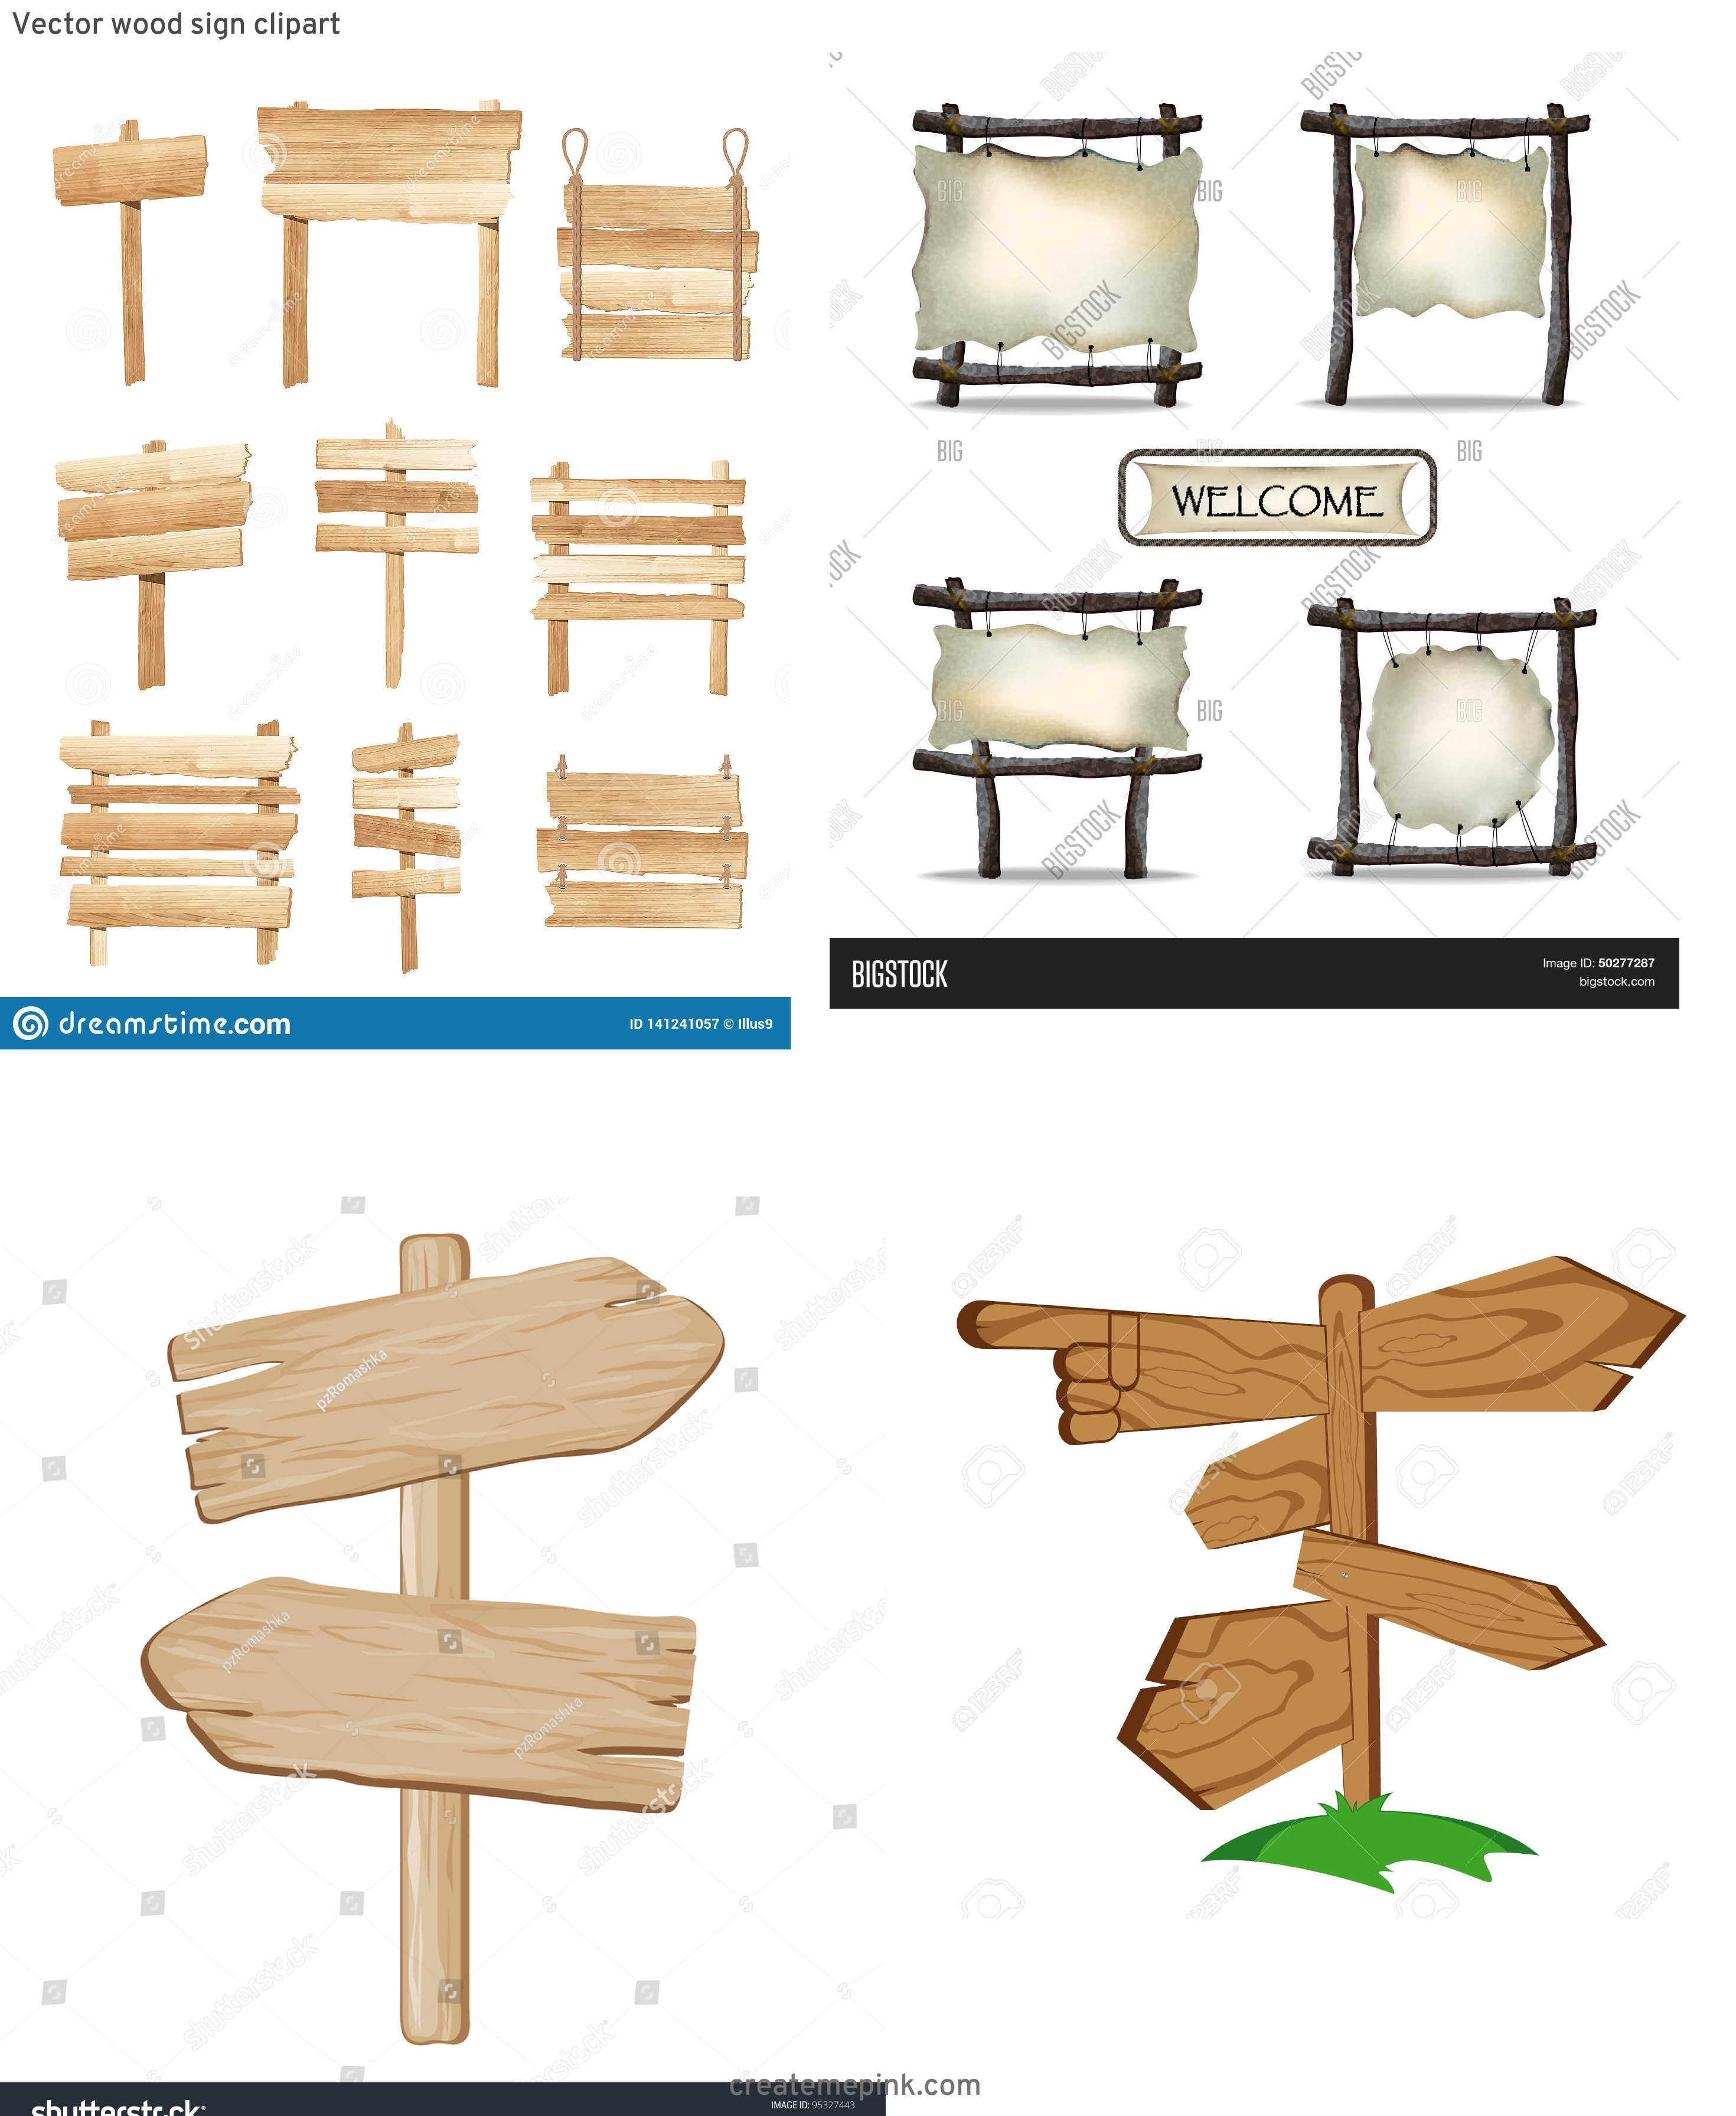 Wooden Sign Post Vector: Vector Wood Sign Clipart